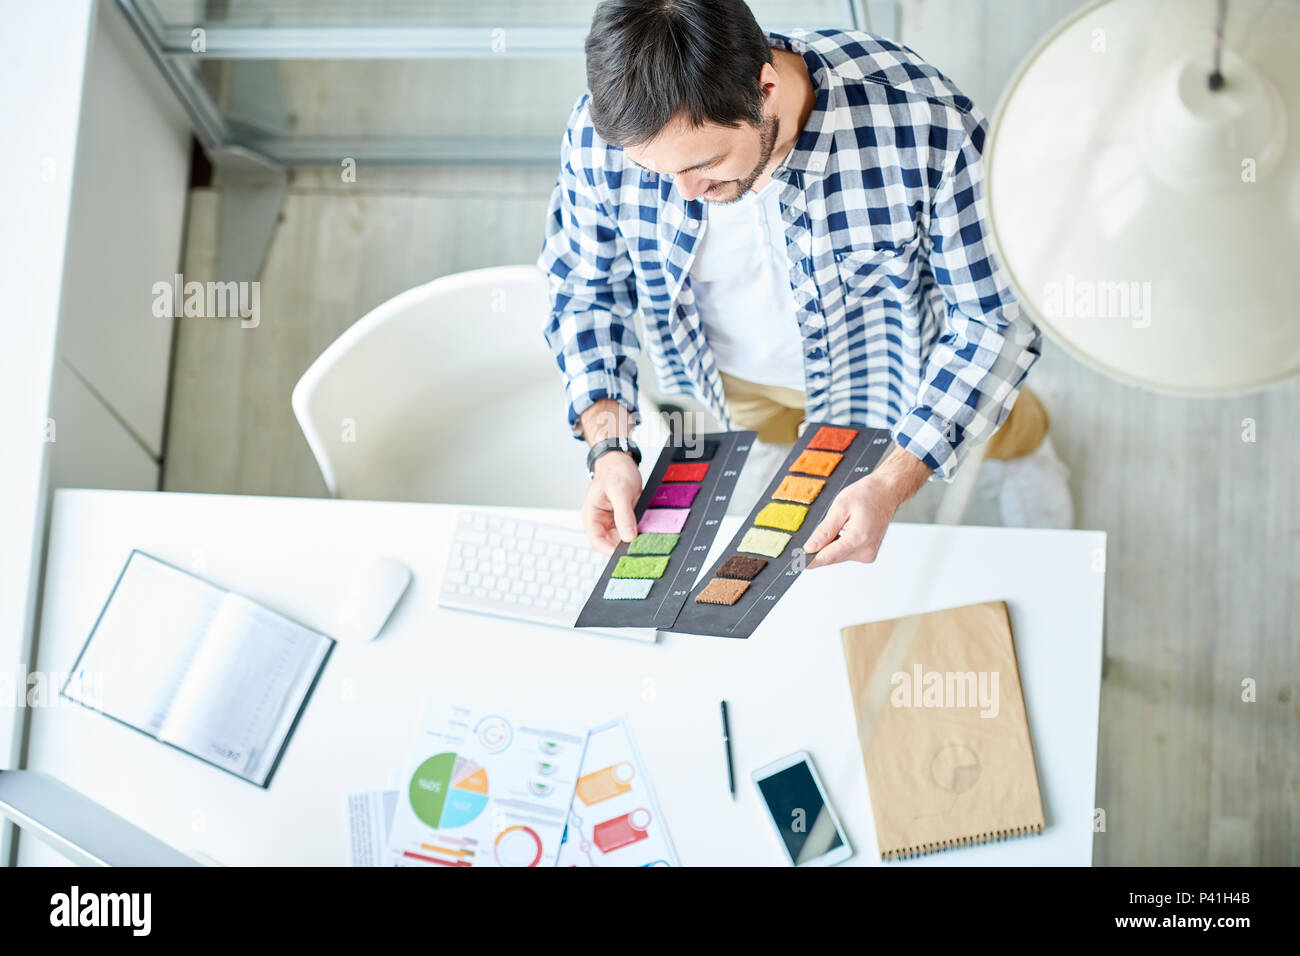 Creative stylist working with palettes - Stock Image